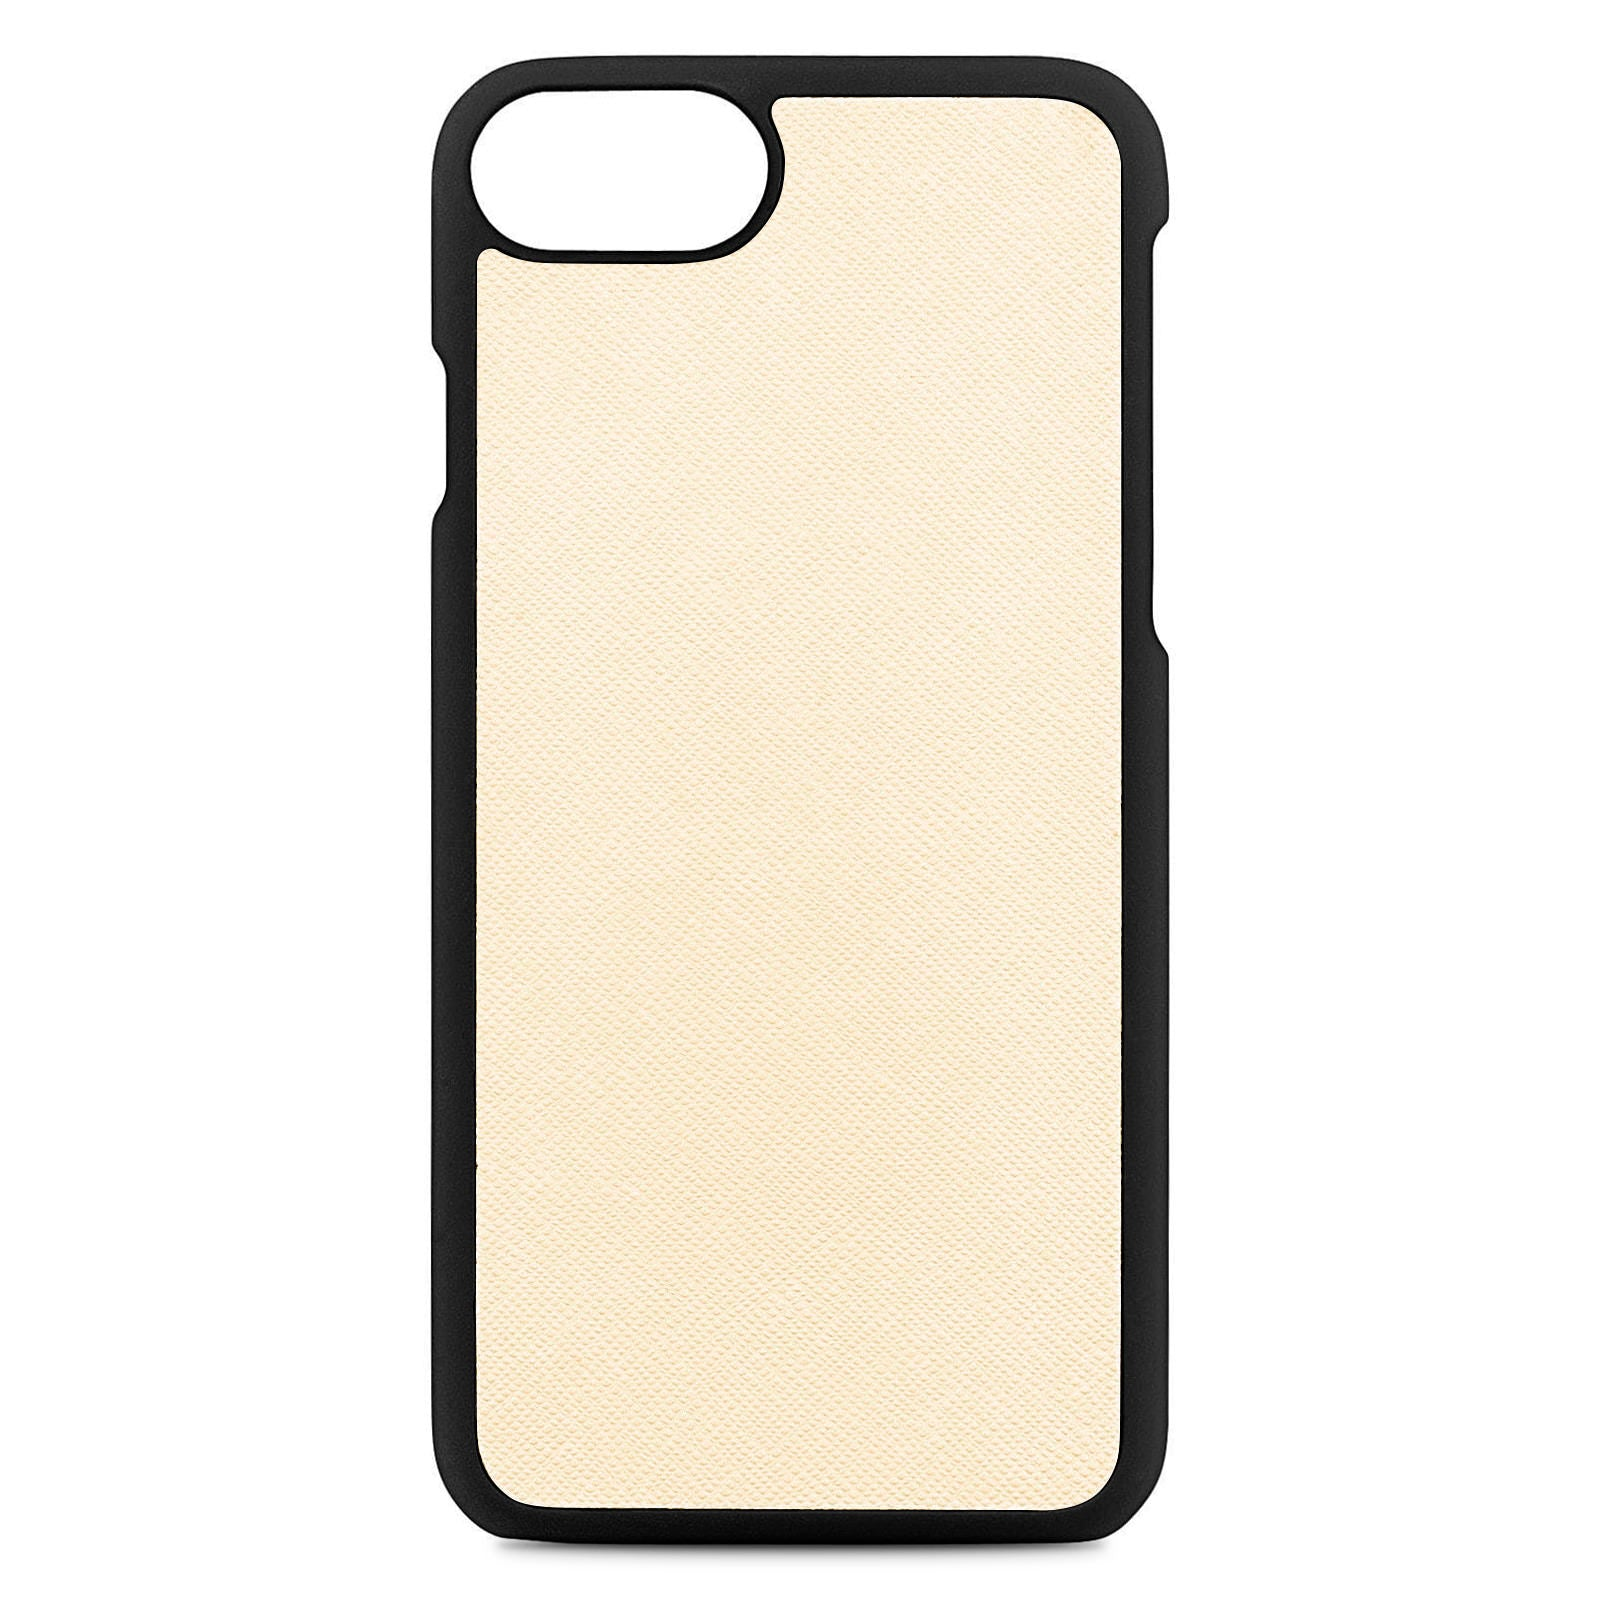 Blank Personalised Ivory Saffiano Leather iPhone Case